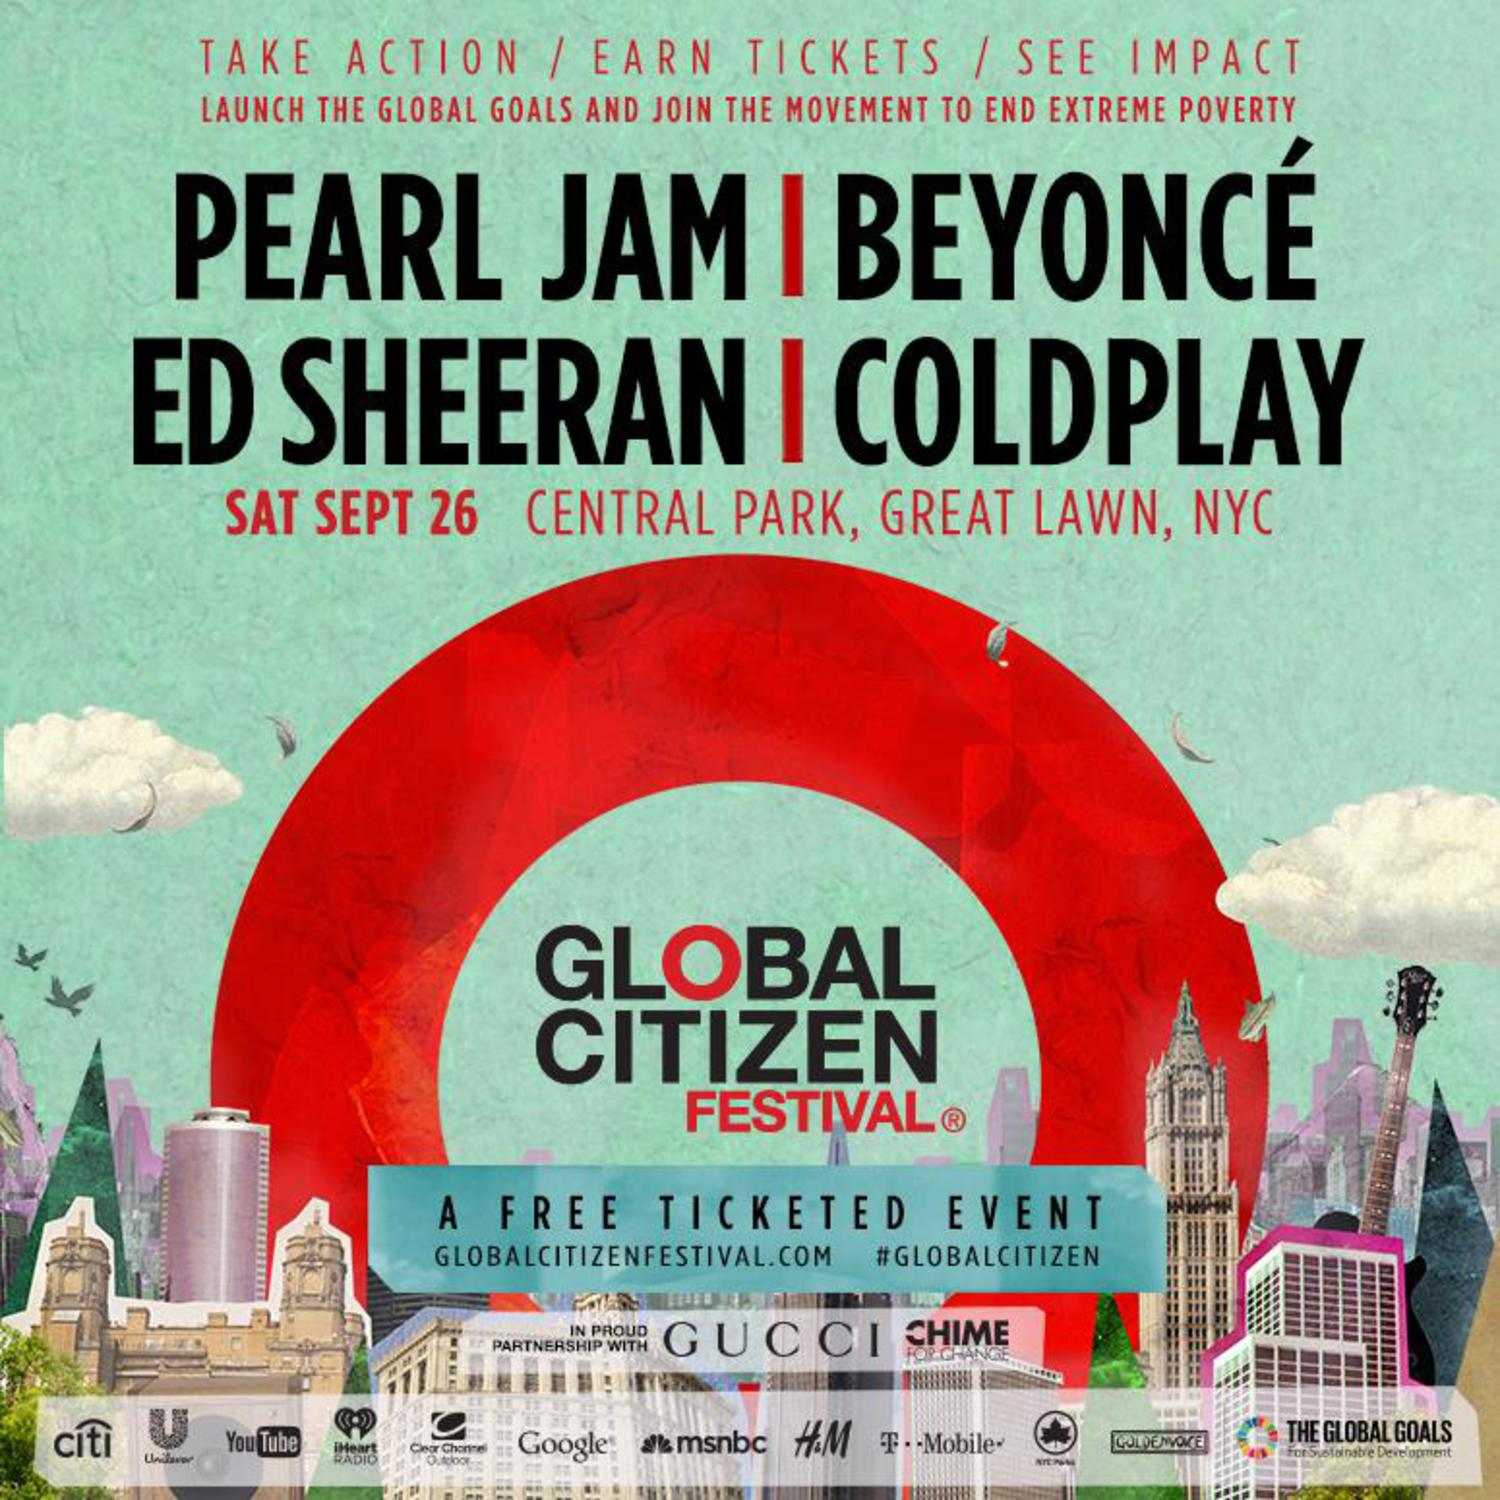 Global Citizen Festival 2015